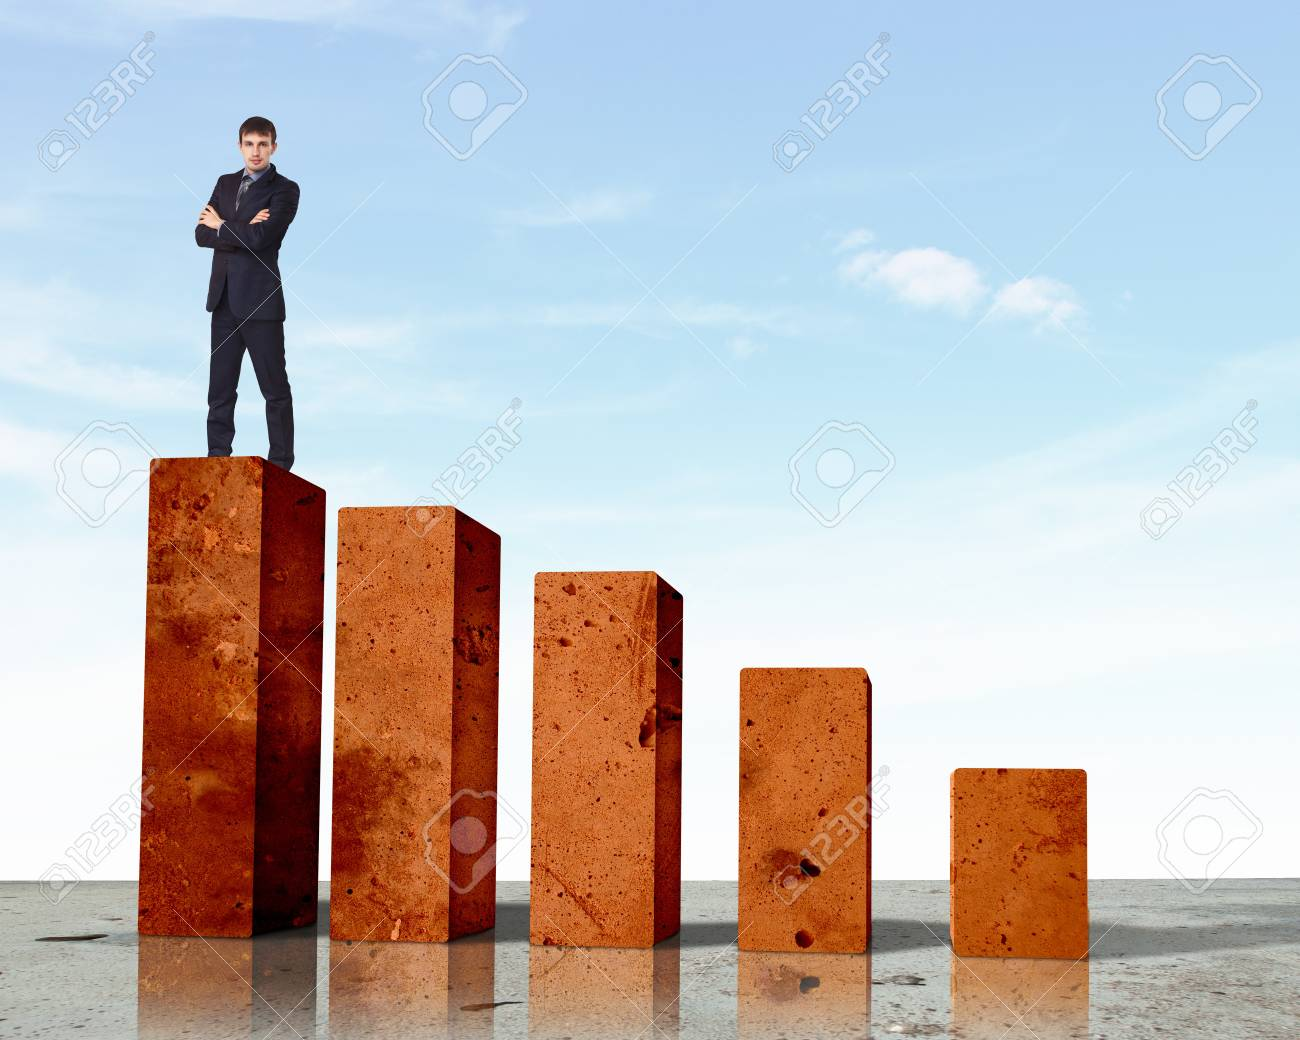 Business person on a graph, representing success and growth Stock Photo - 17869751